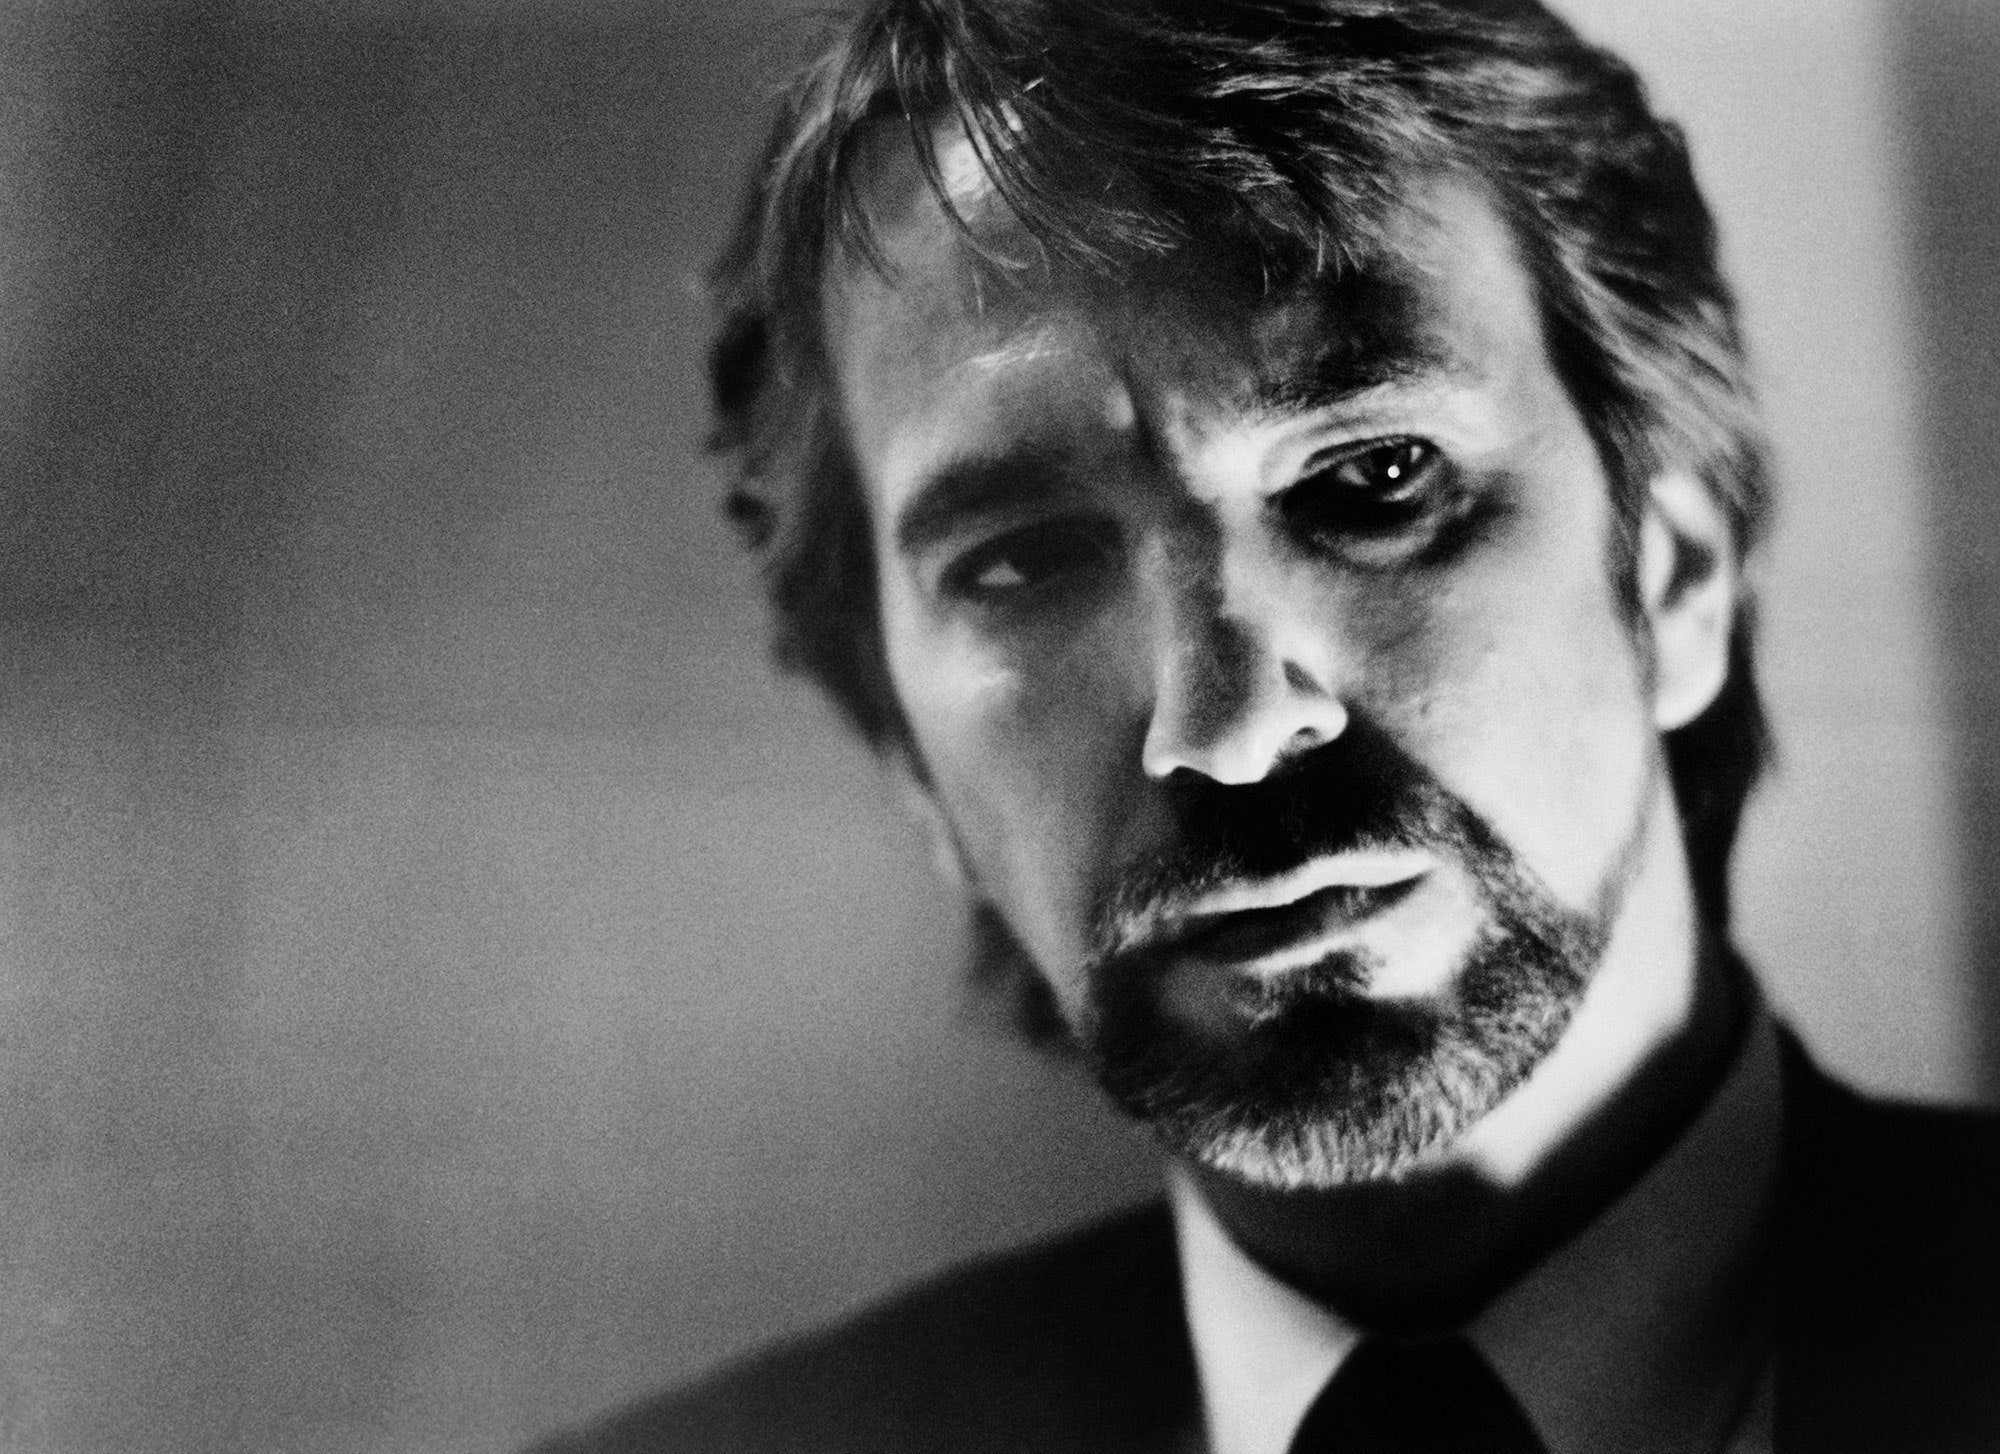 Crouch Alan Rickman Die Hard 20 Things You Might Not Have Realised About The Late Alan Rickman